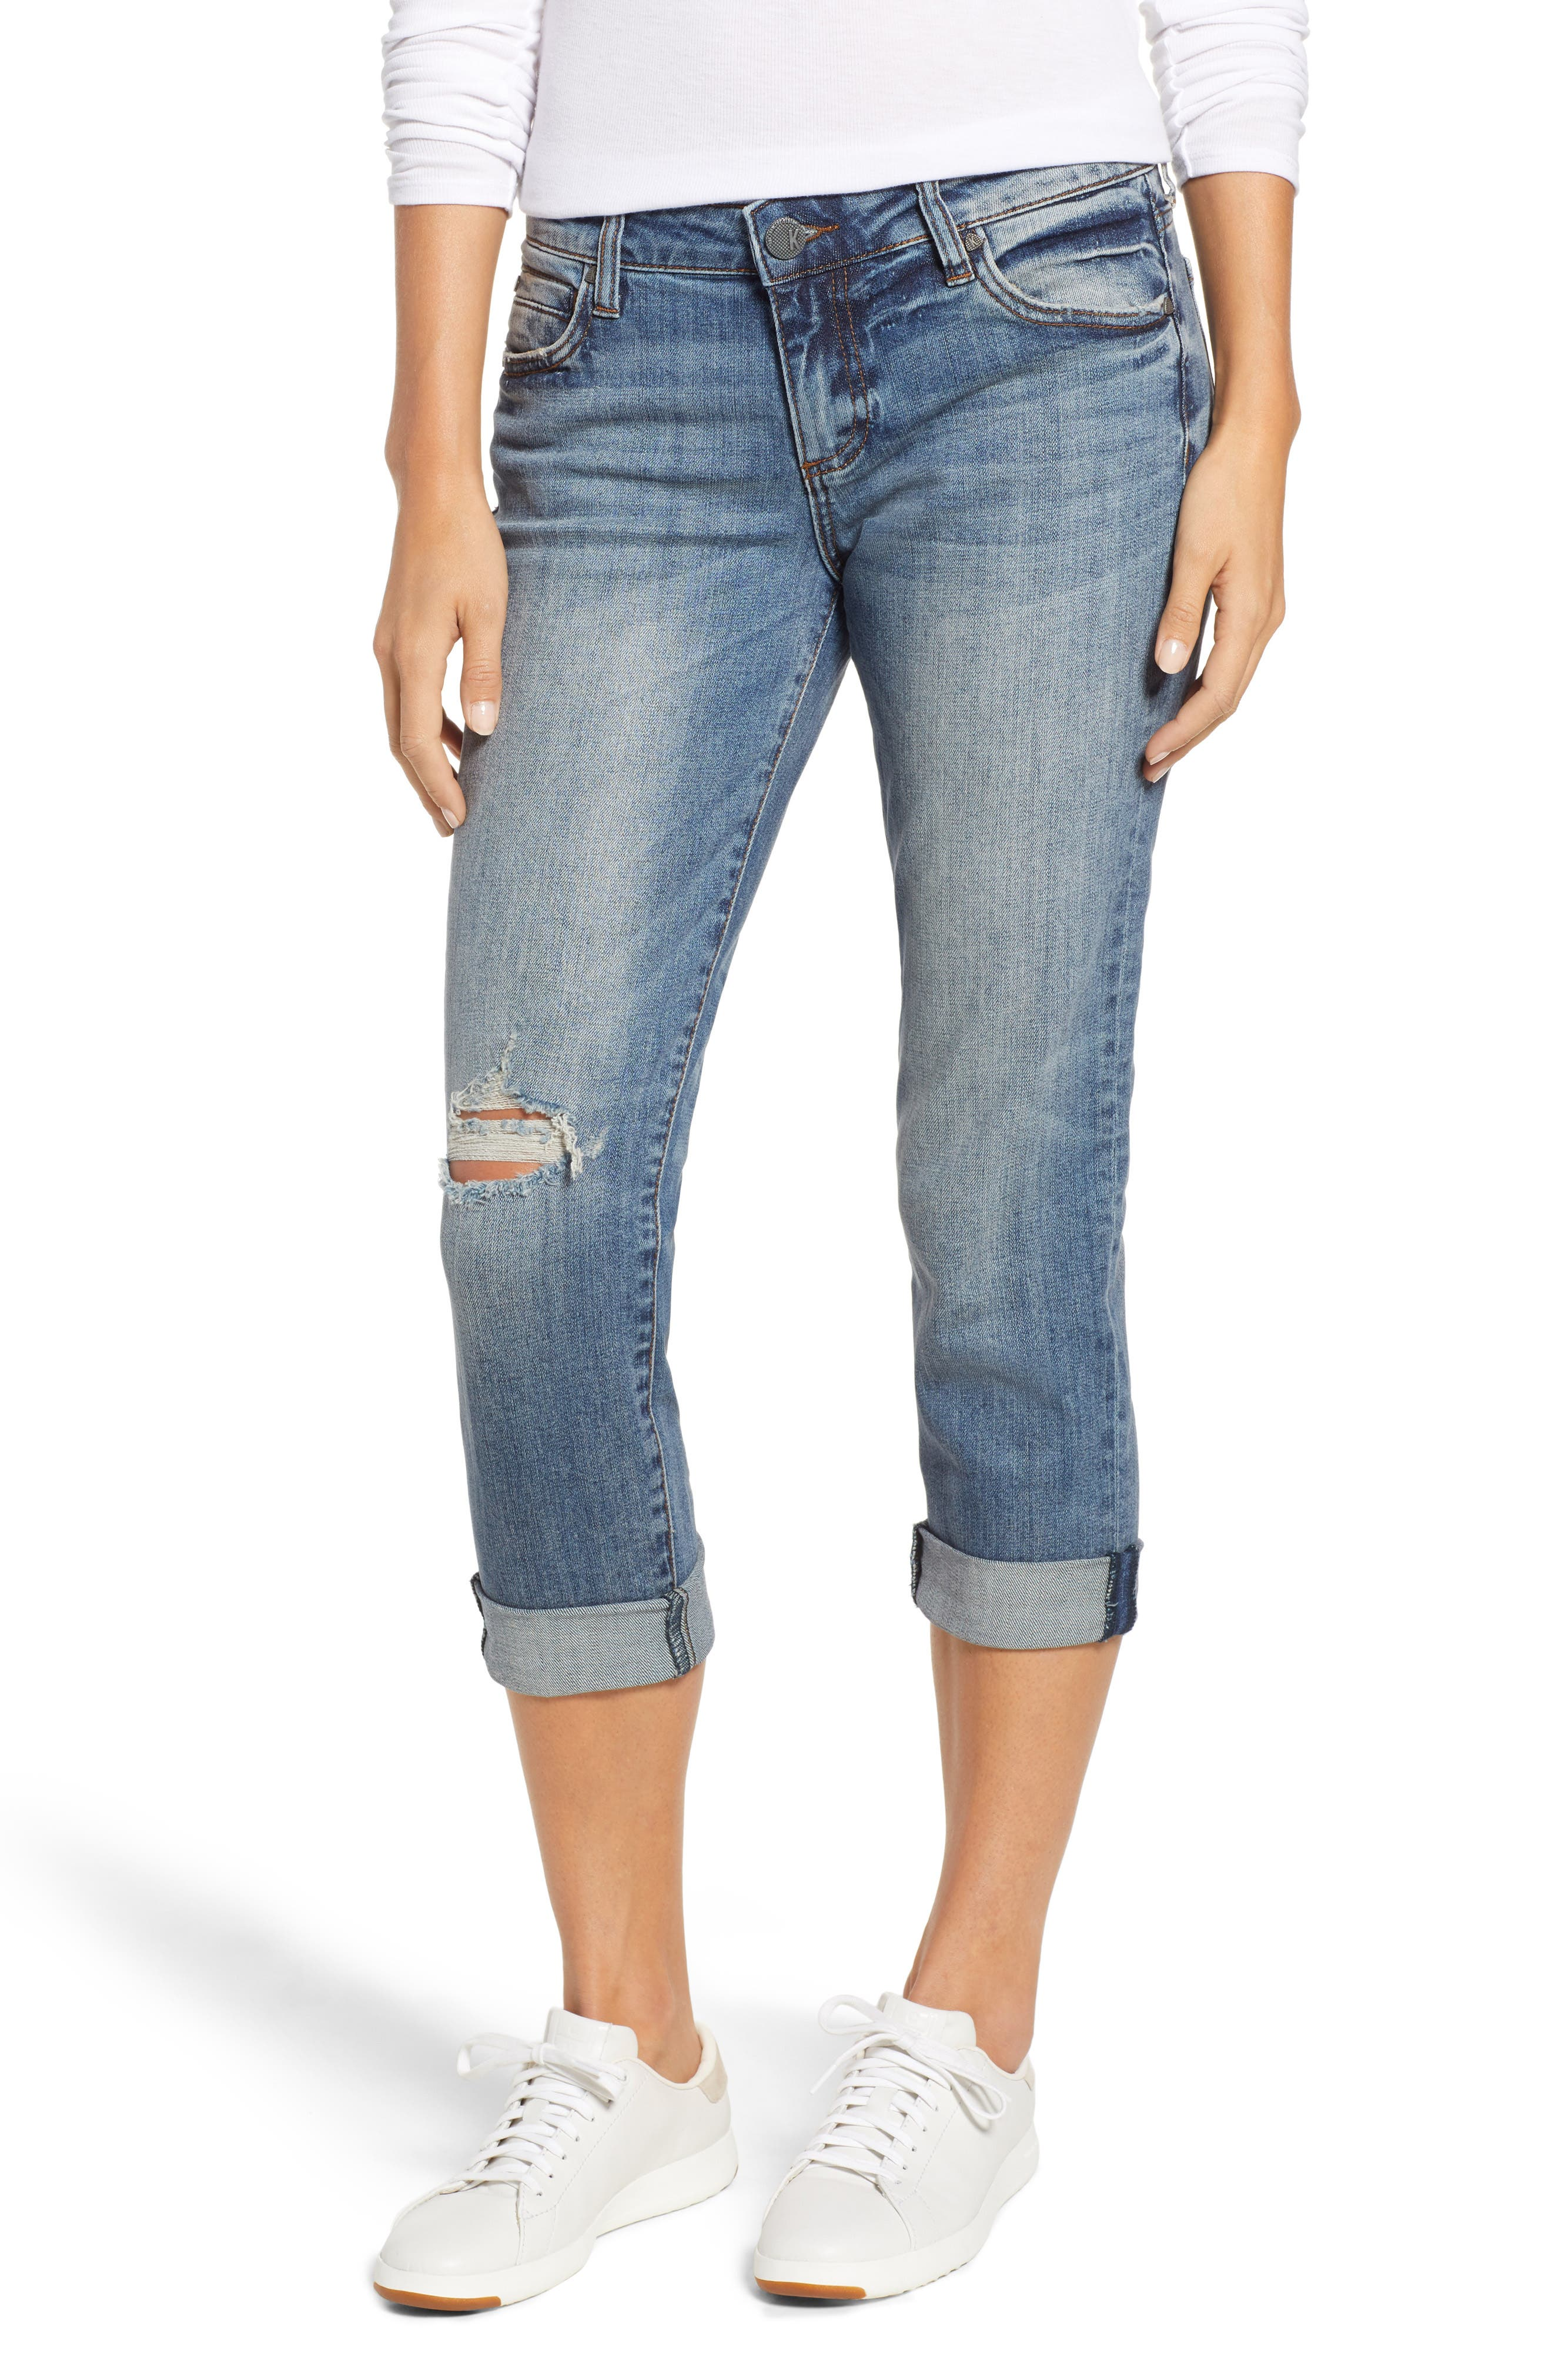 Catherine Ripped Straight Leg Ankle Jeans,                             Main thumbnail 1, color,                             400